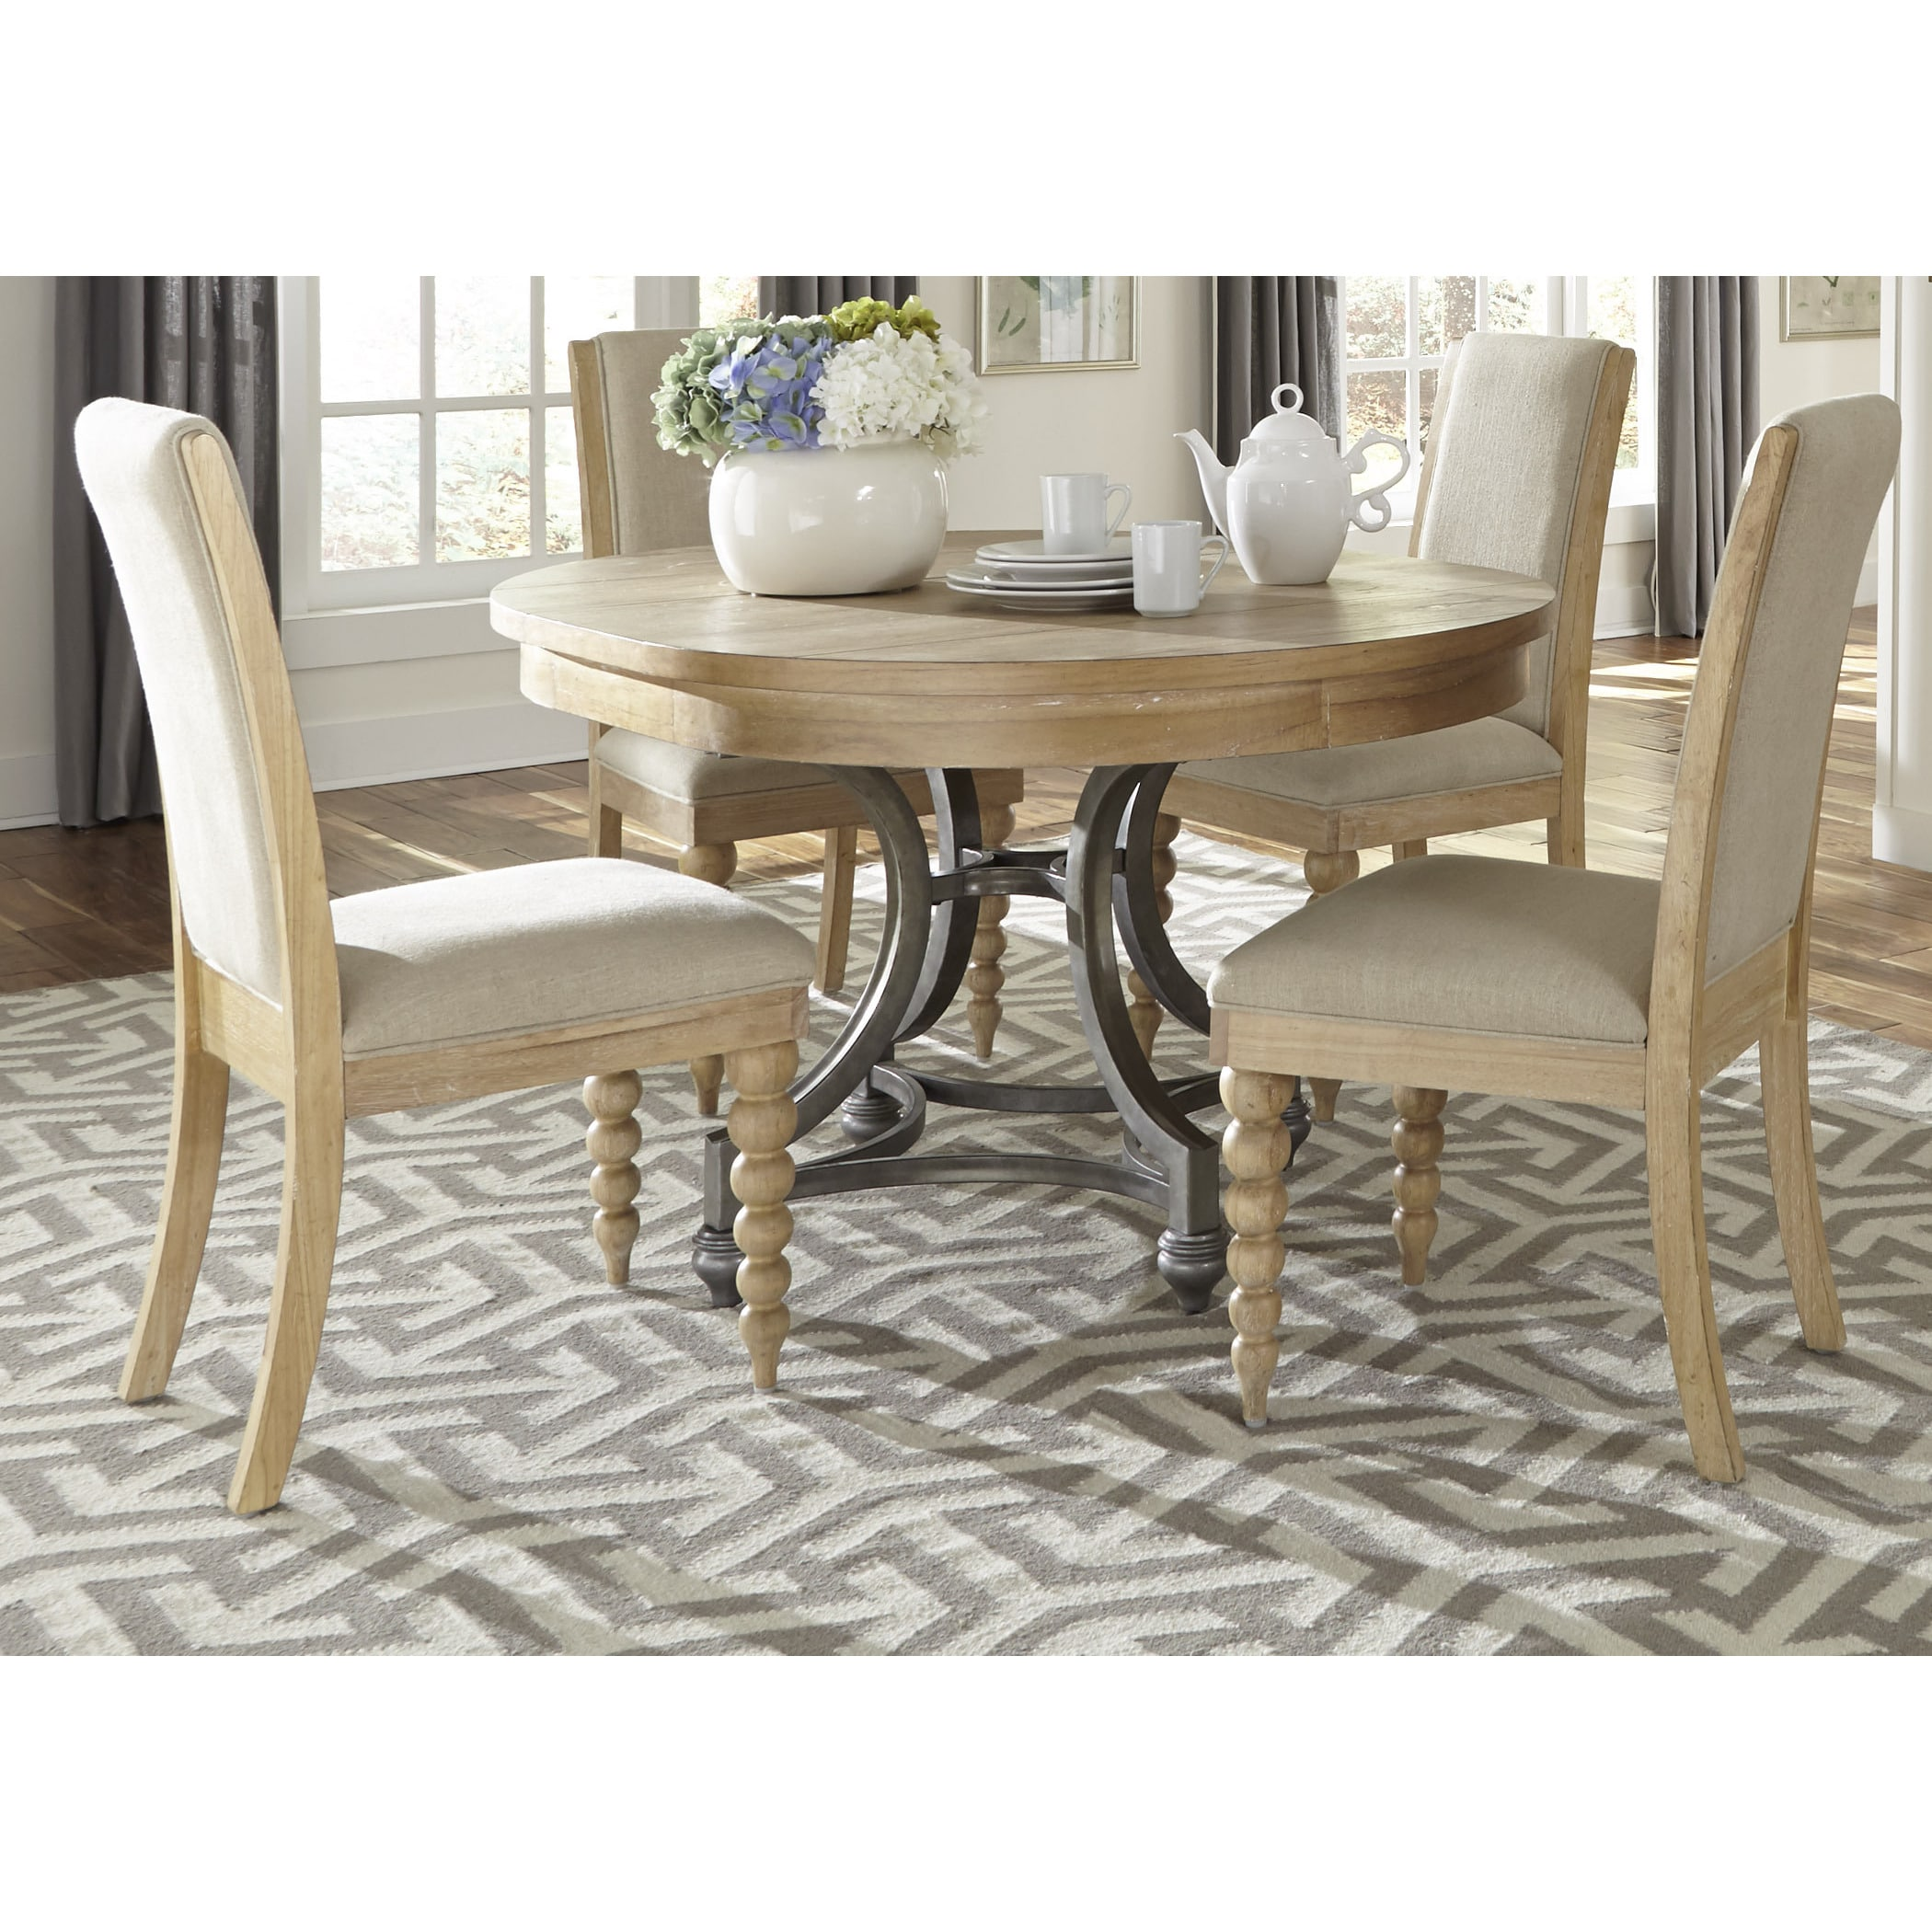 Cottage Harbor Sand Round Dinette Table